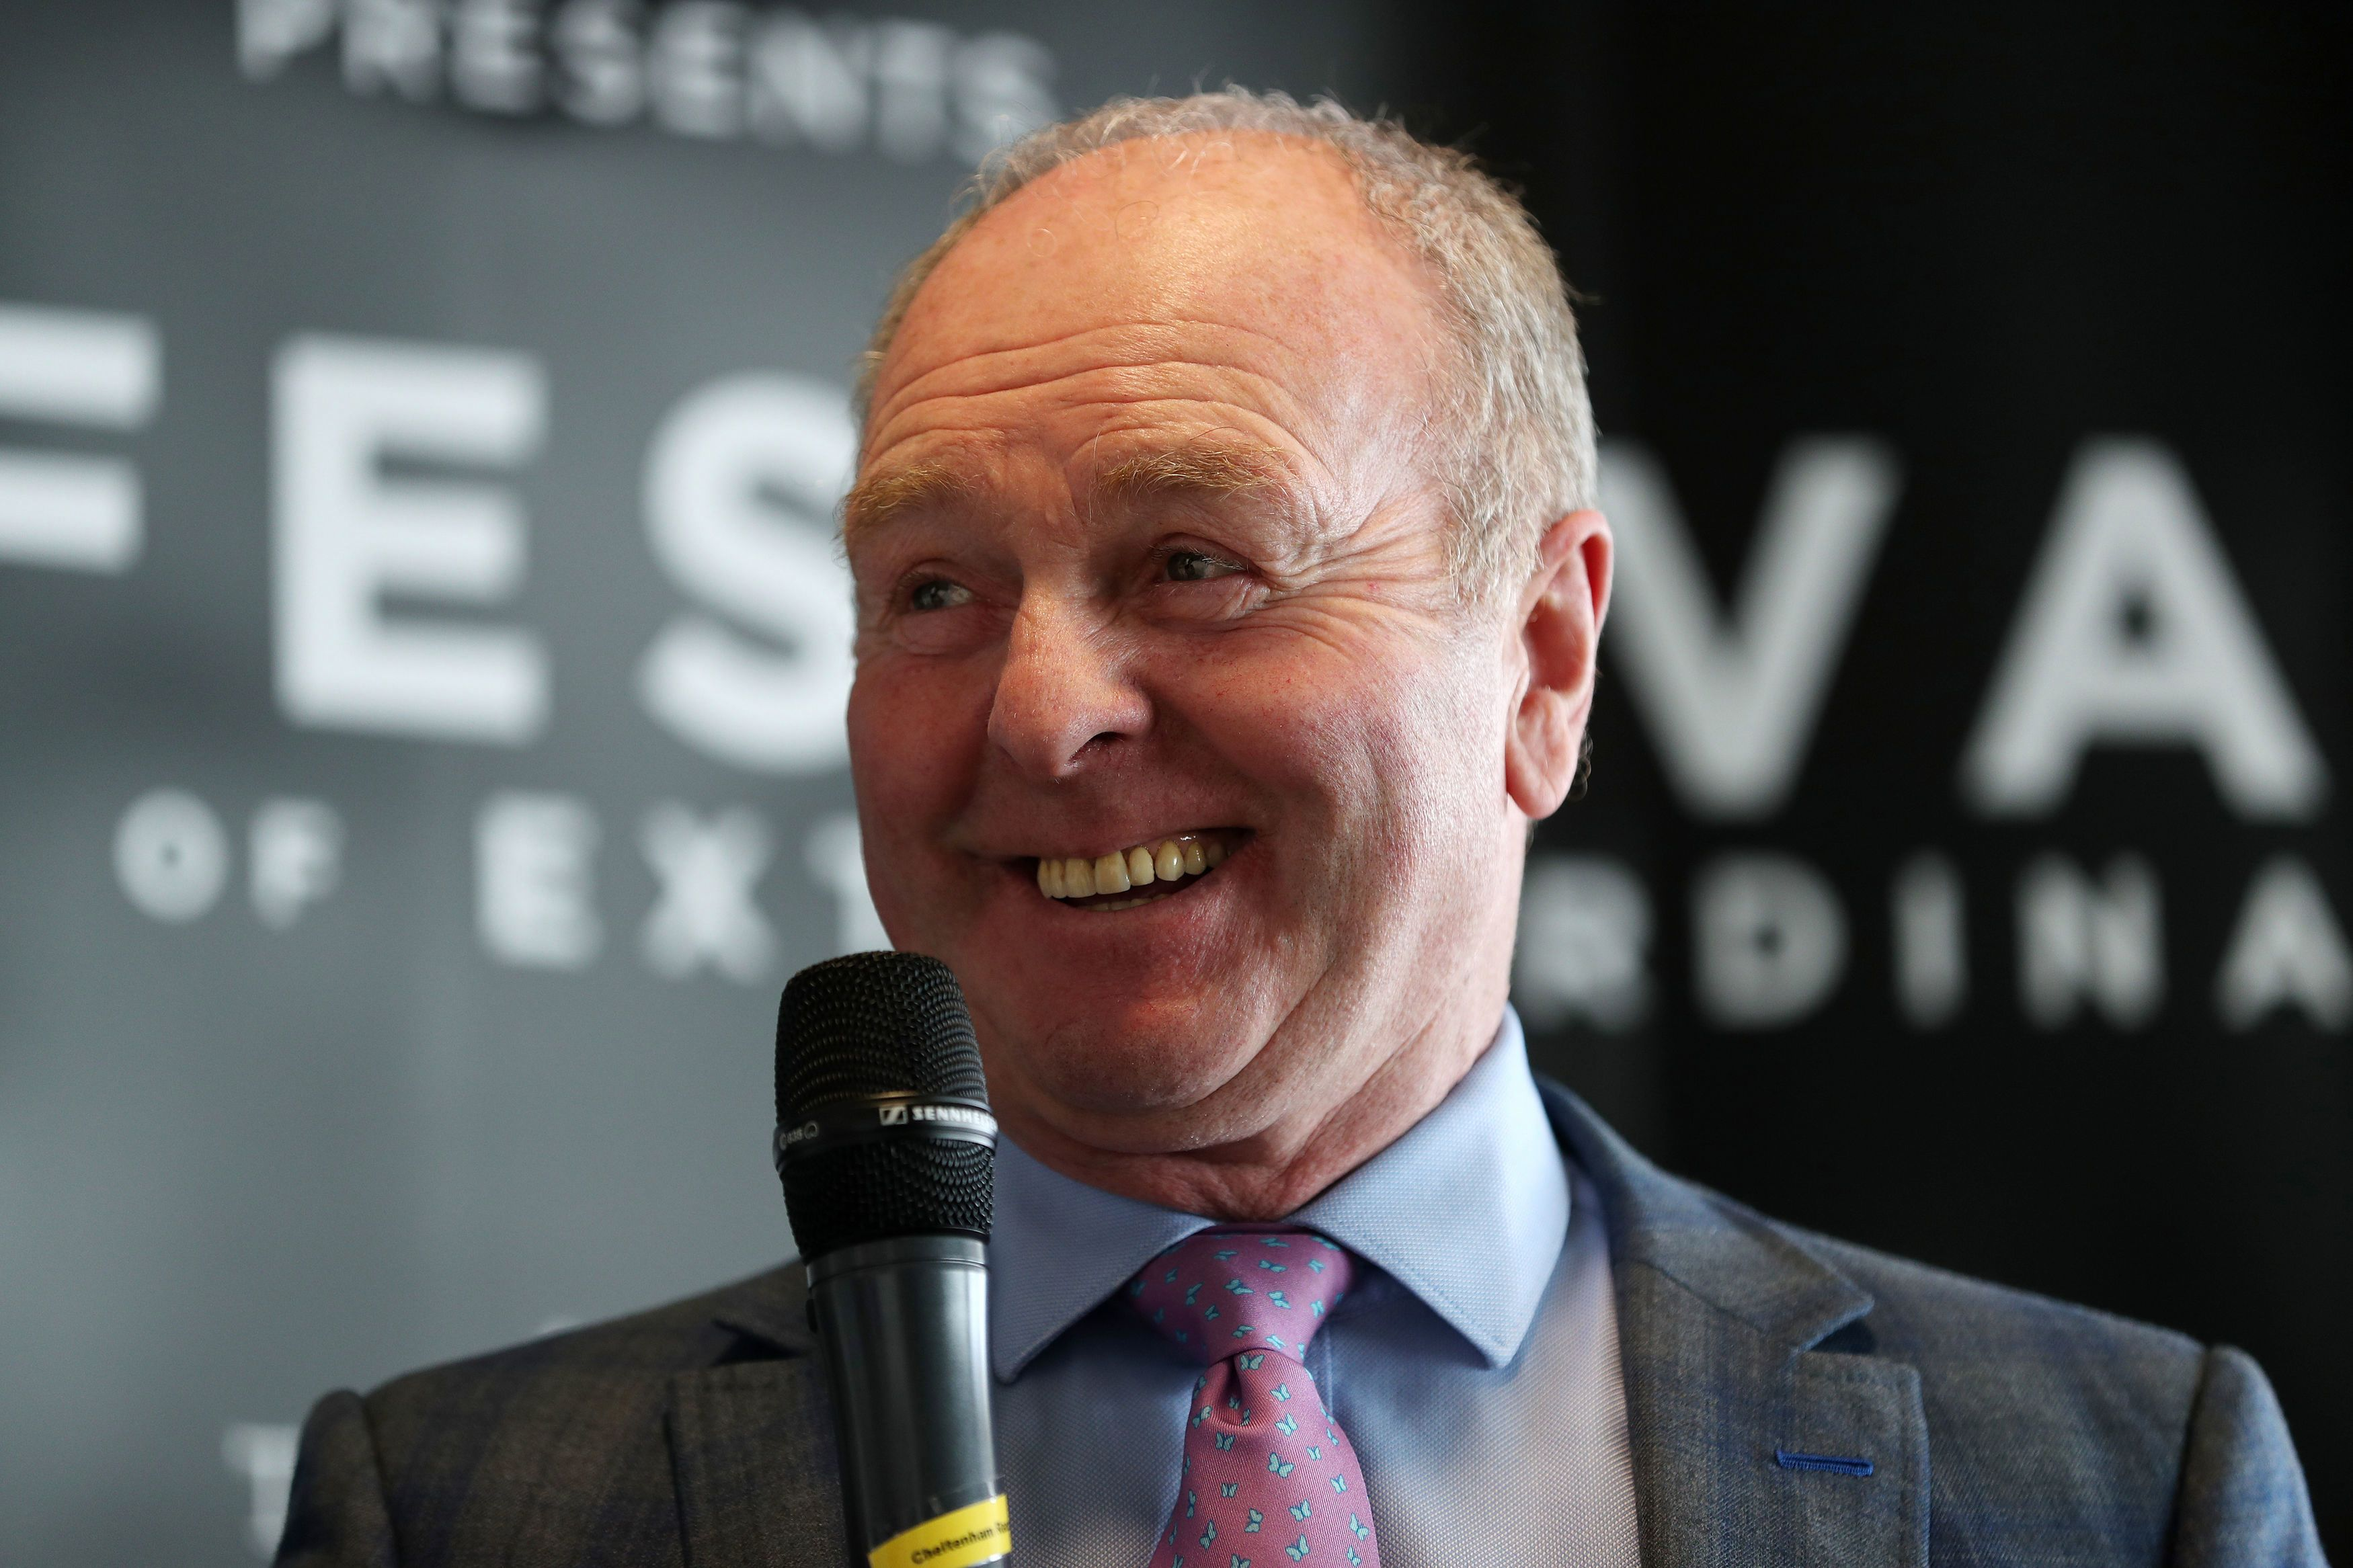 Cheltenham Festival: Jonjo O'Neill talks to Dave Kidd about what it means to train and ride a Festival winner